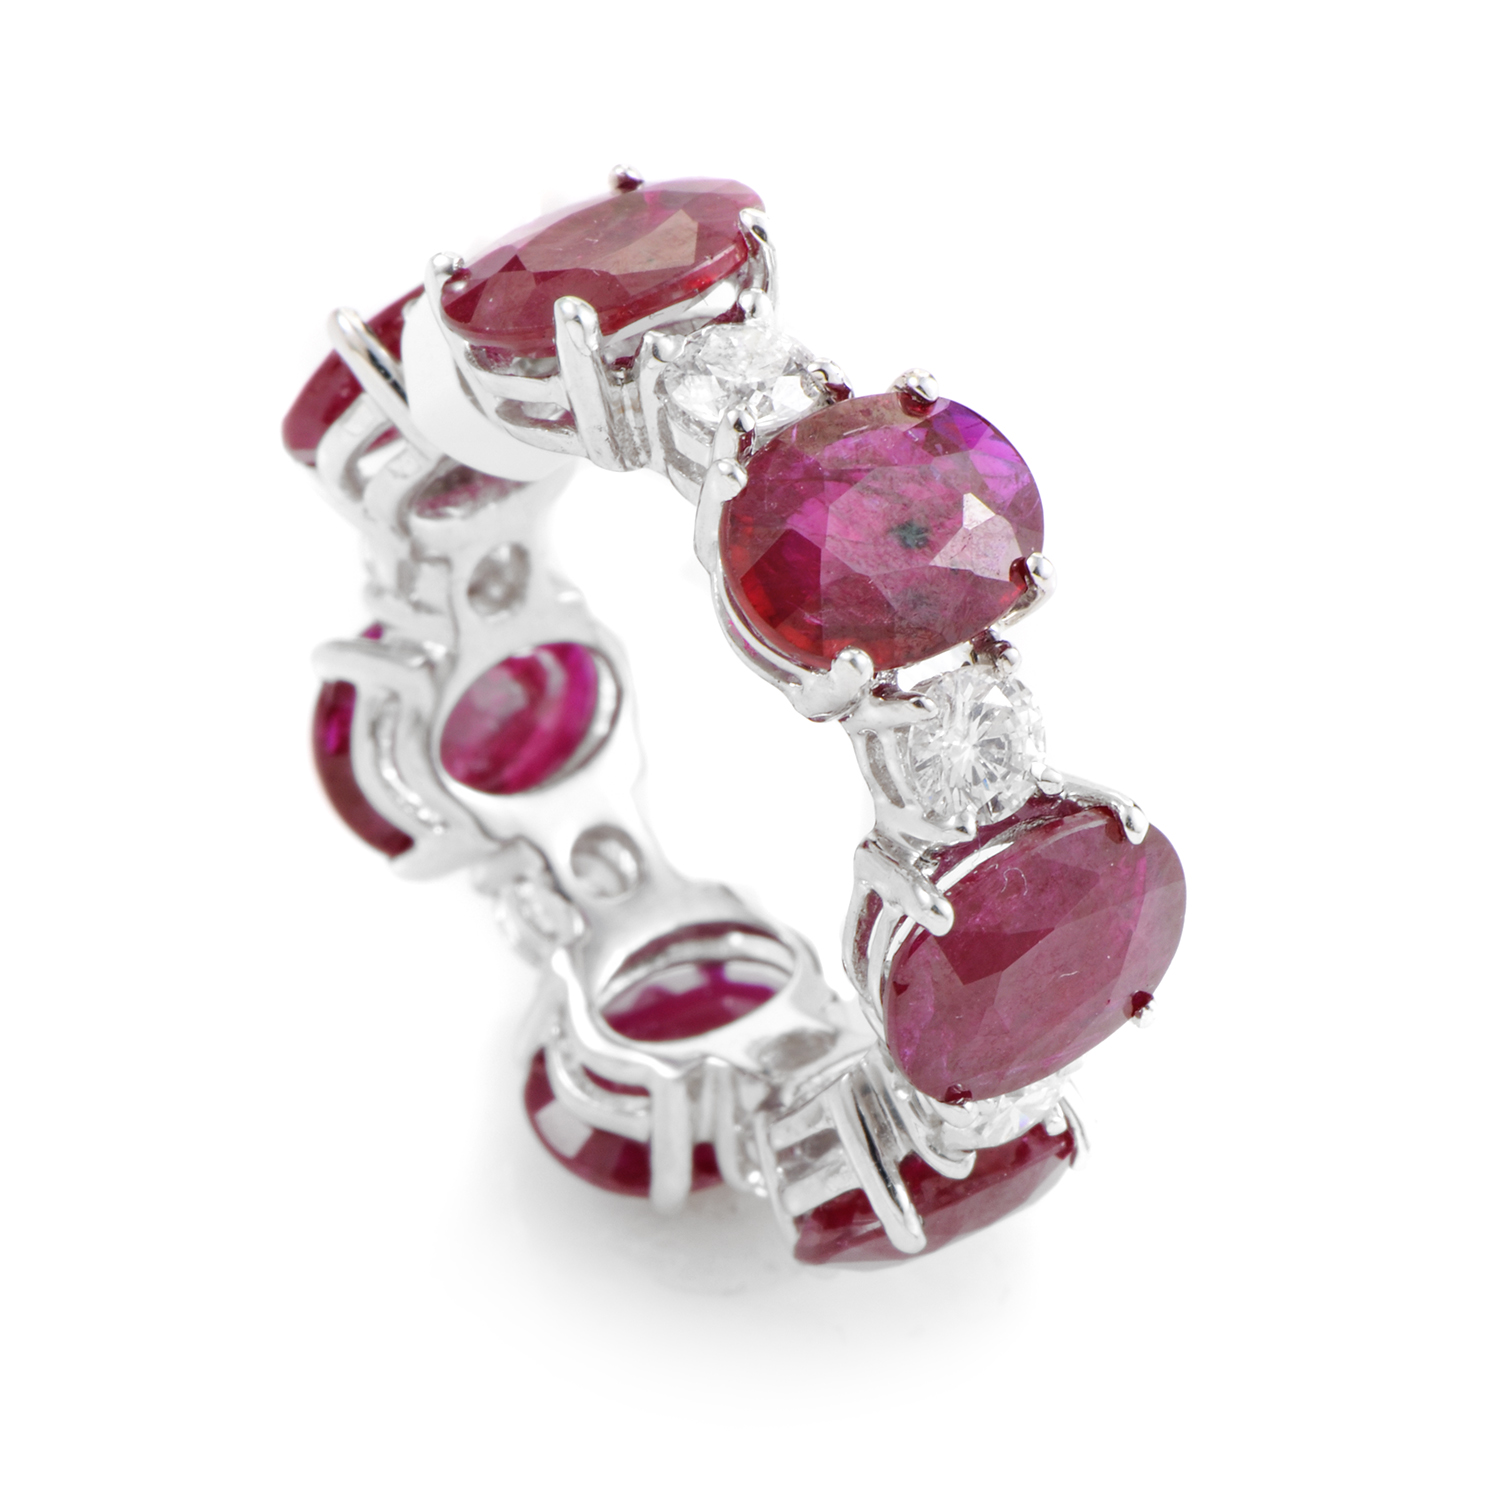 18K White Gold Ruby & Diamond Ring KORBW27ABBZ